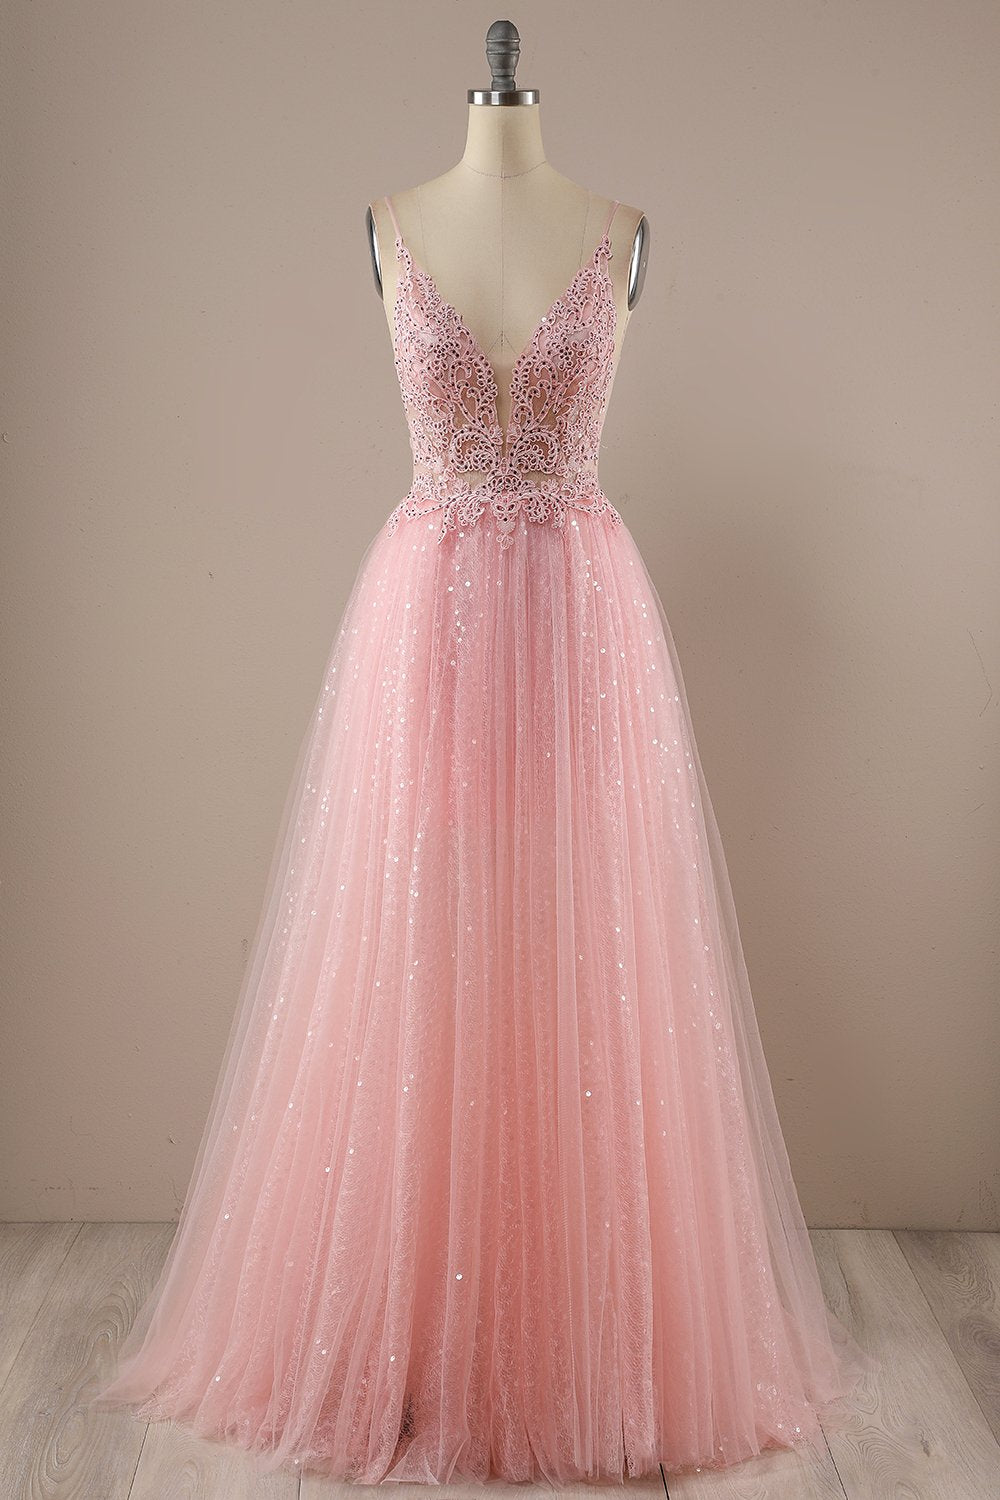 Rosa Langes Prom Party Kleid